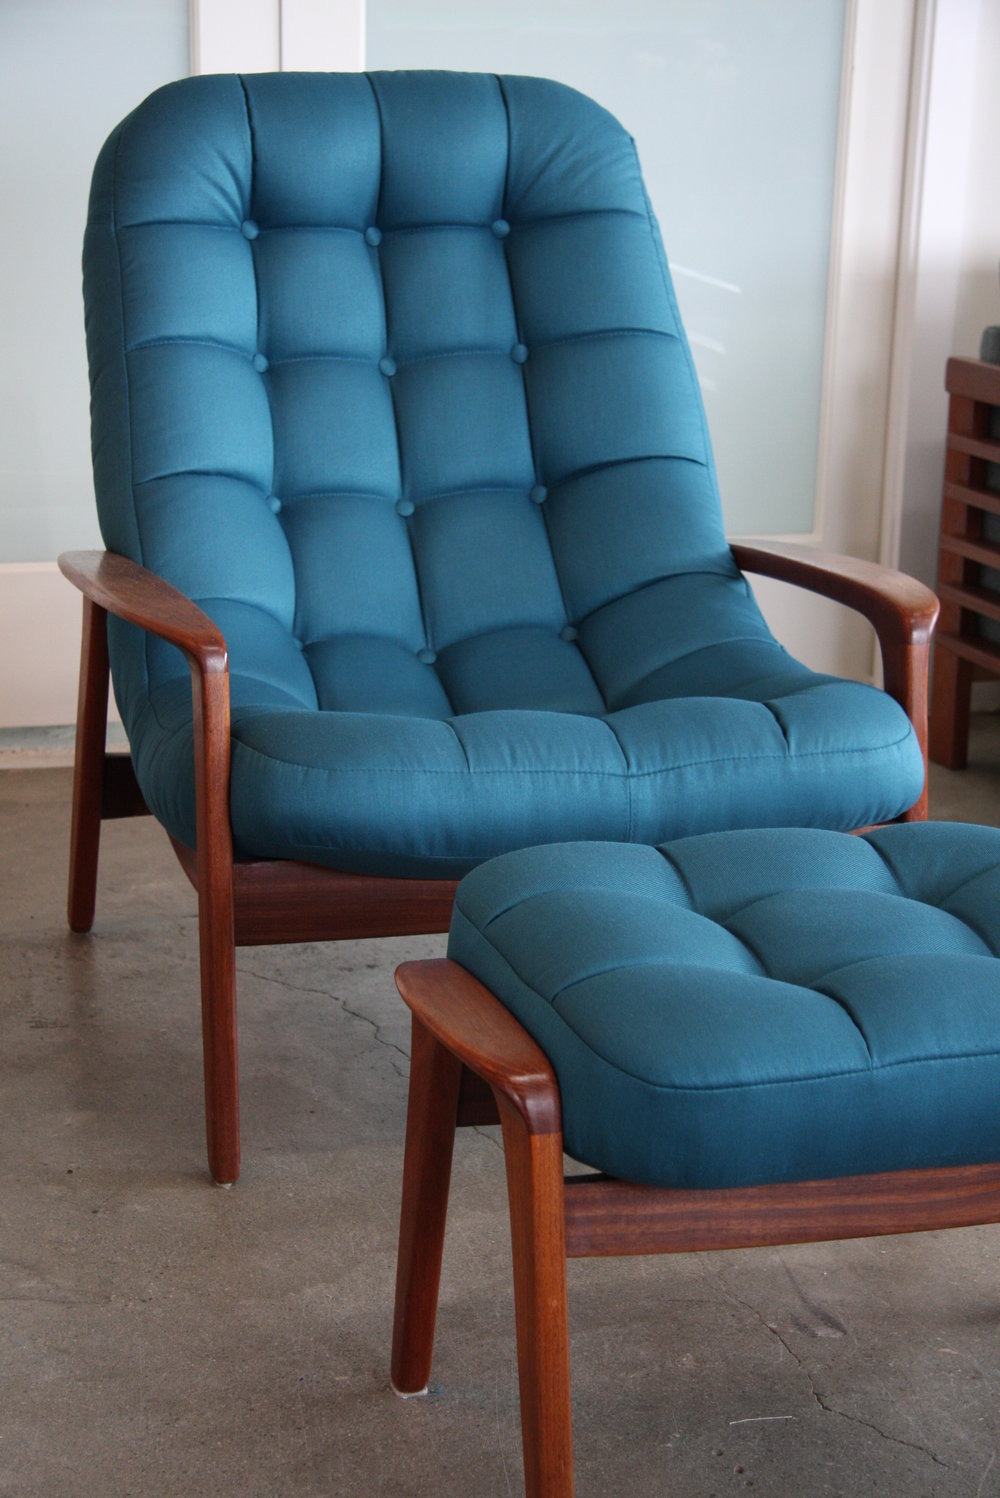 Mid century palm chair.JPG